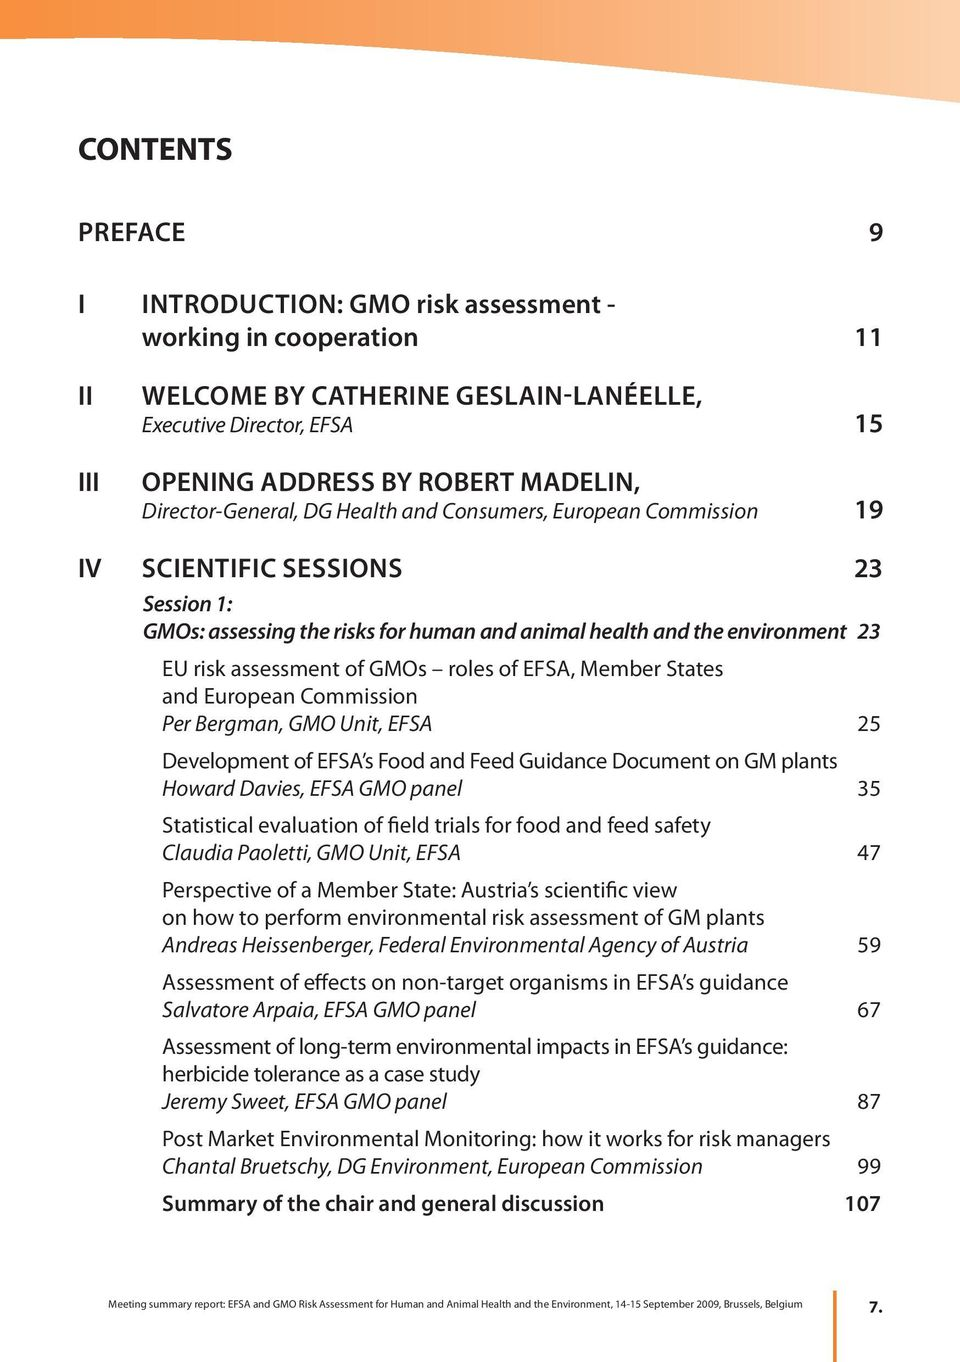 of GMOs roles of EFSA, Member States and European Commission Per Bergman, GMO Unit, EFSA 25 Development of EFSA s Food and Feed Guidance Document on GM plants Howard Davies, EFSA GMO panel 35